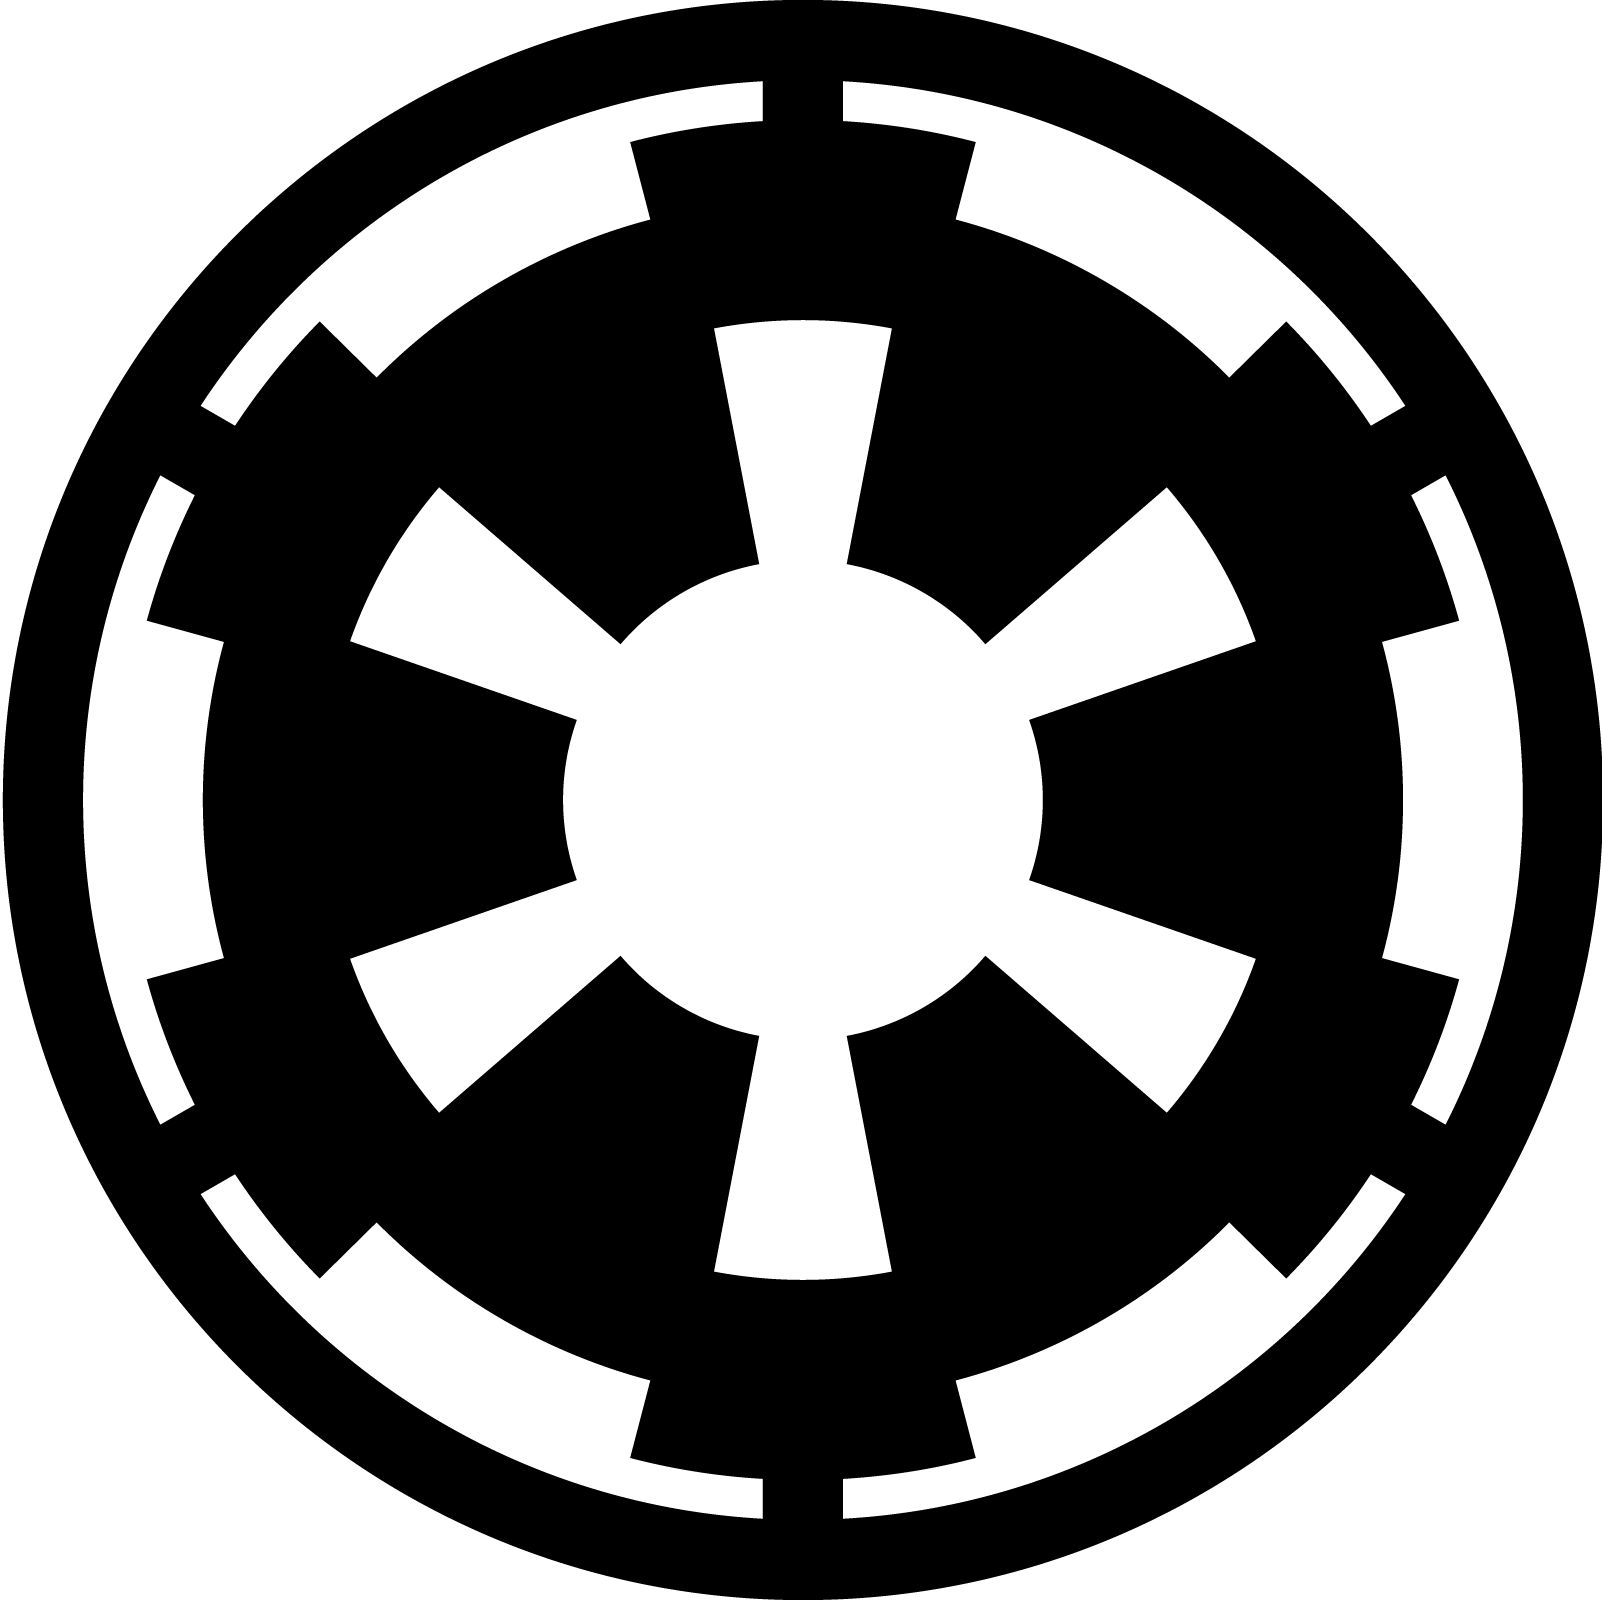 Image from http://xaonon.dyndns.org/logos/starwars ...